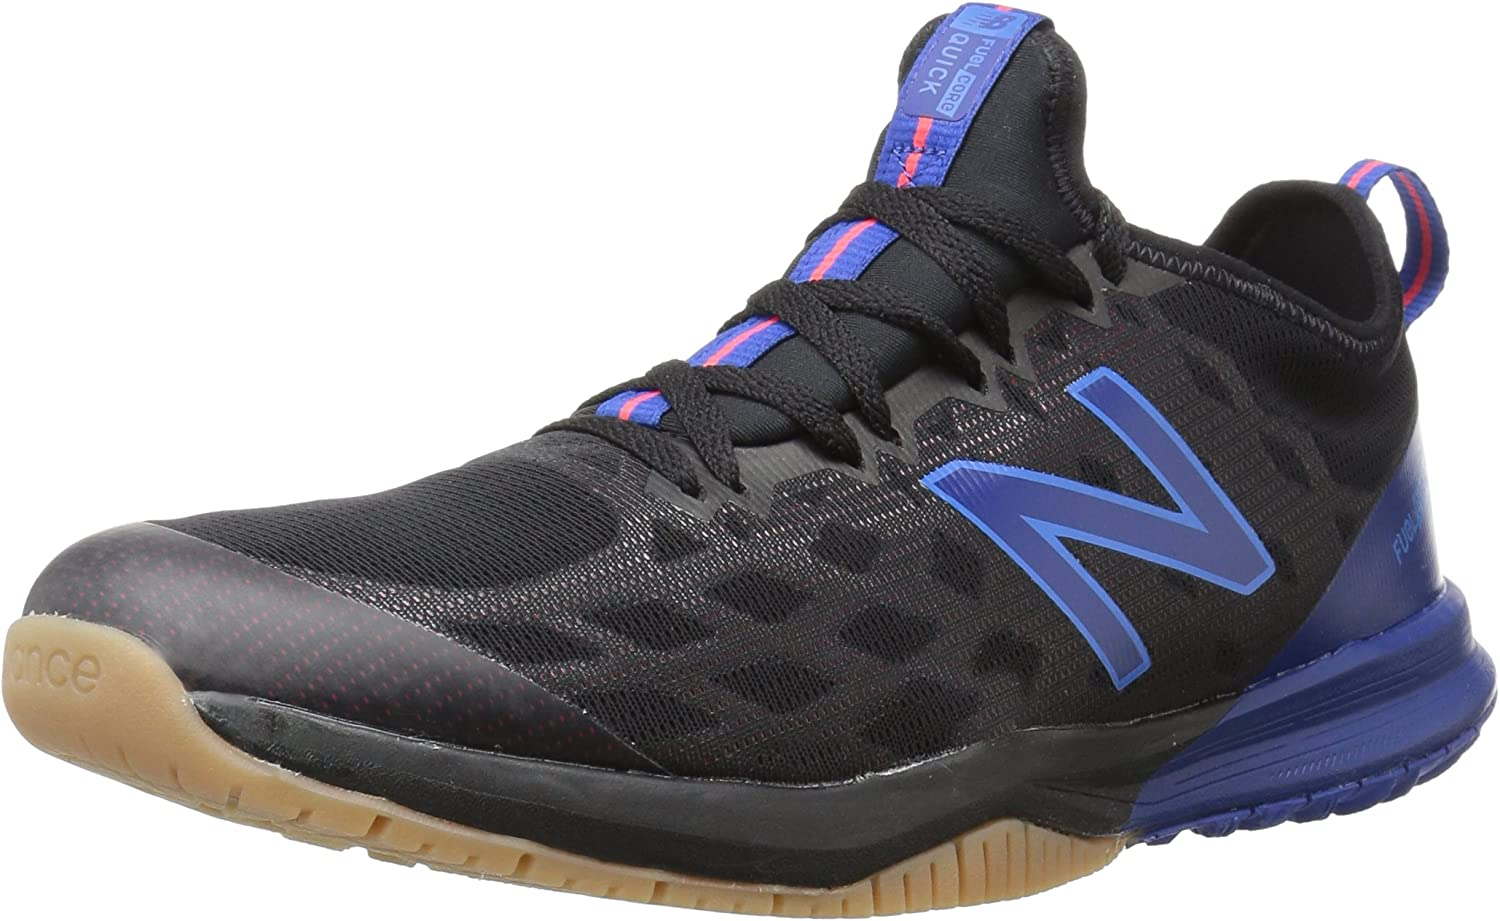 New Balance Men's FuelCore Quick V3 Cross Trainer